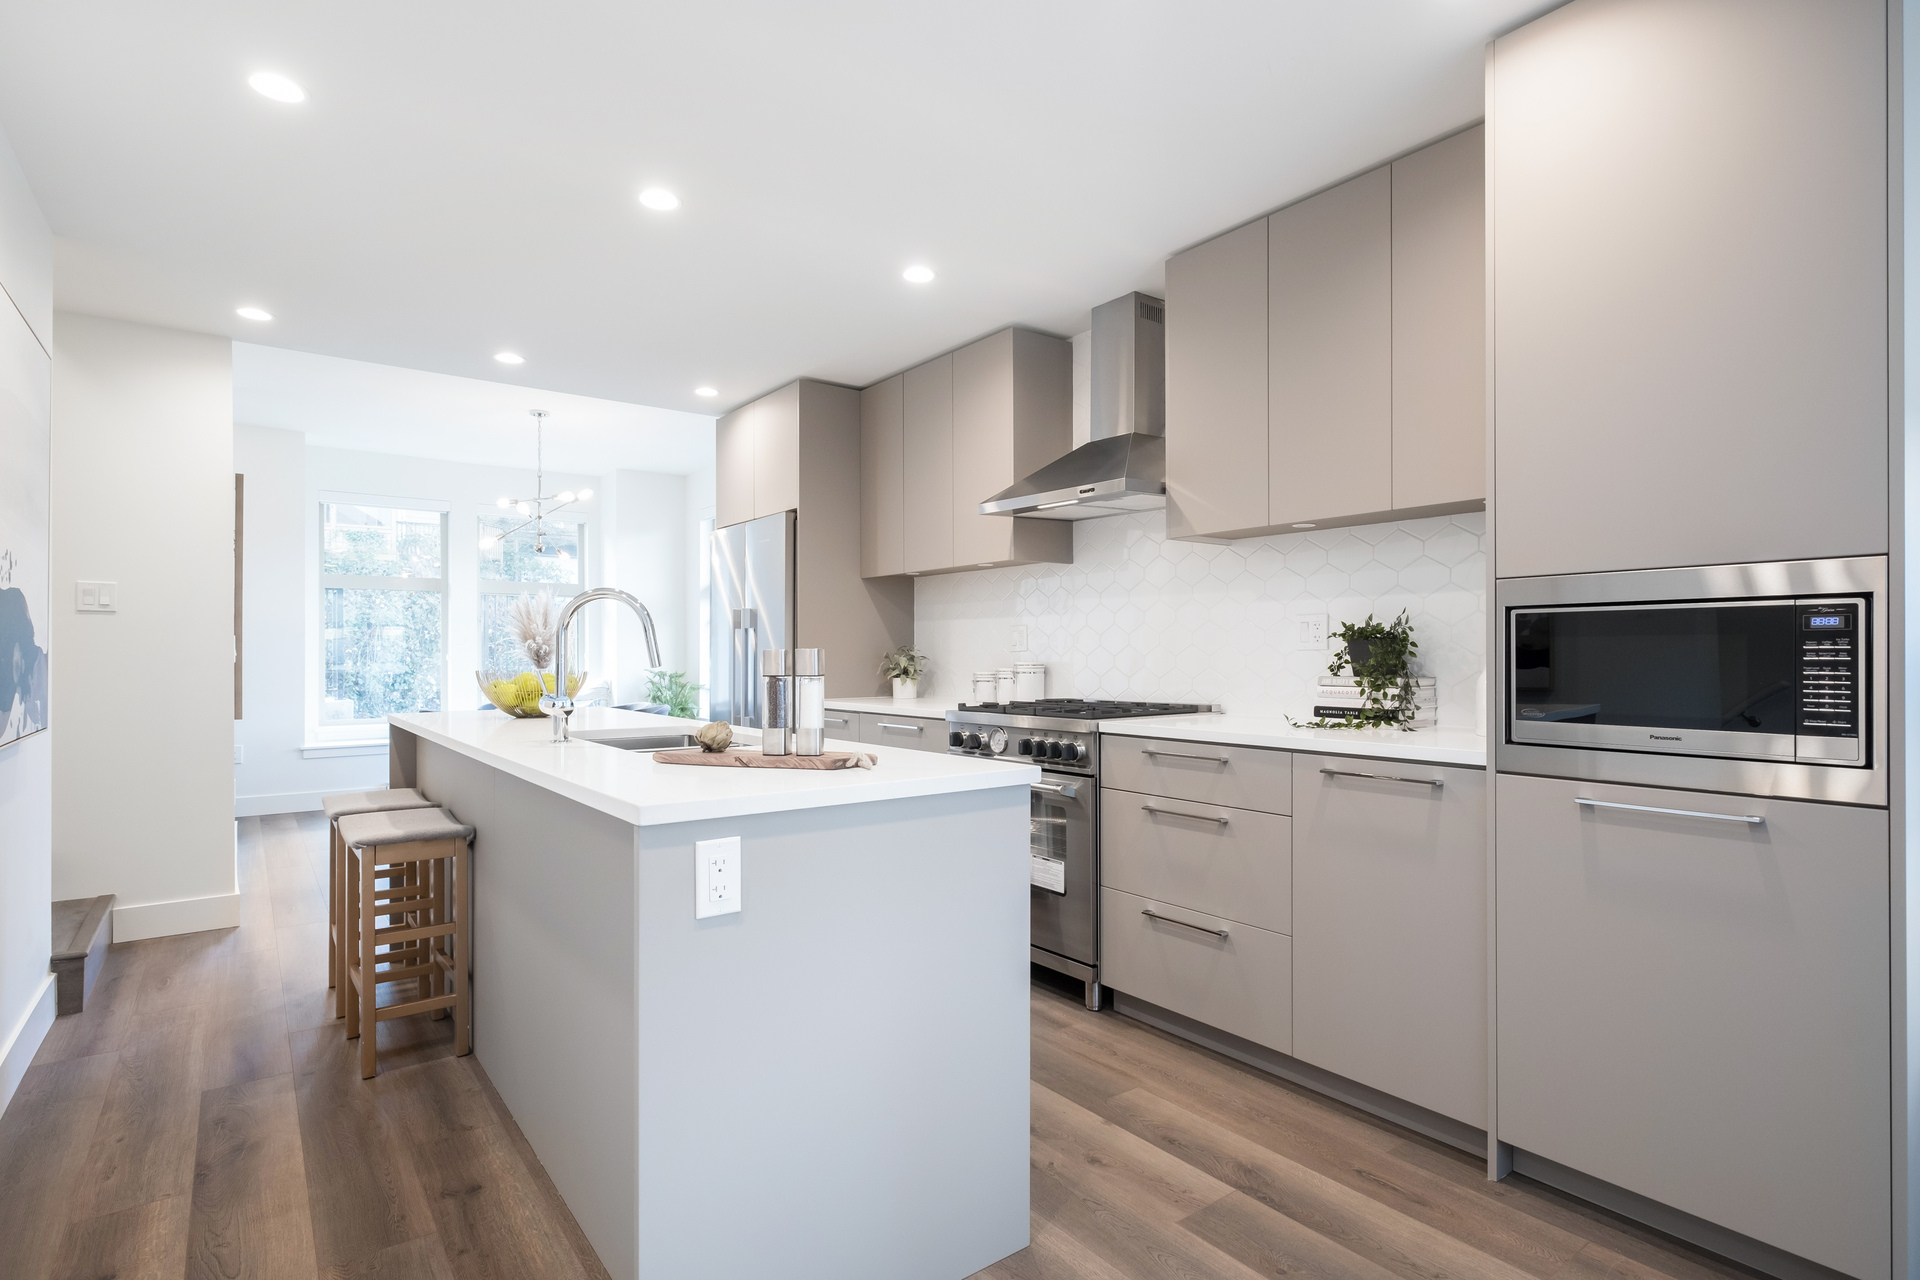 Kitchen at 2317 St. Andrews Street, Port Moody Centre, Port Moody